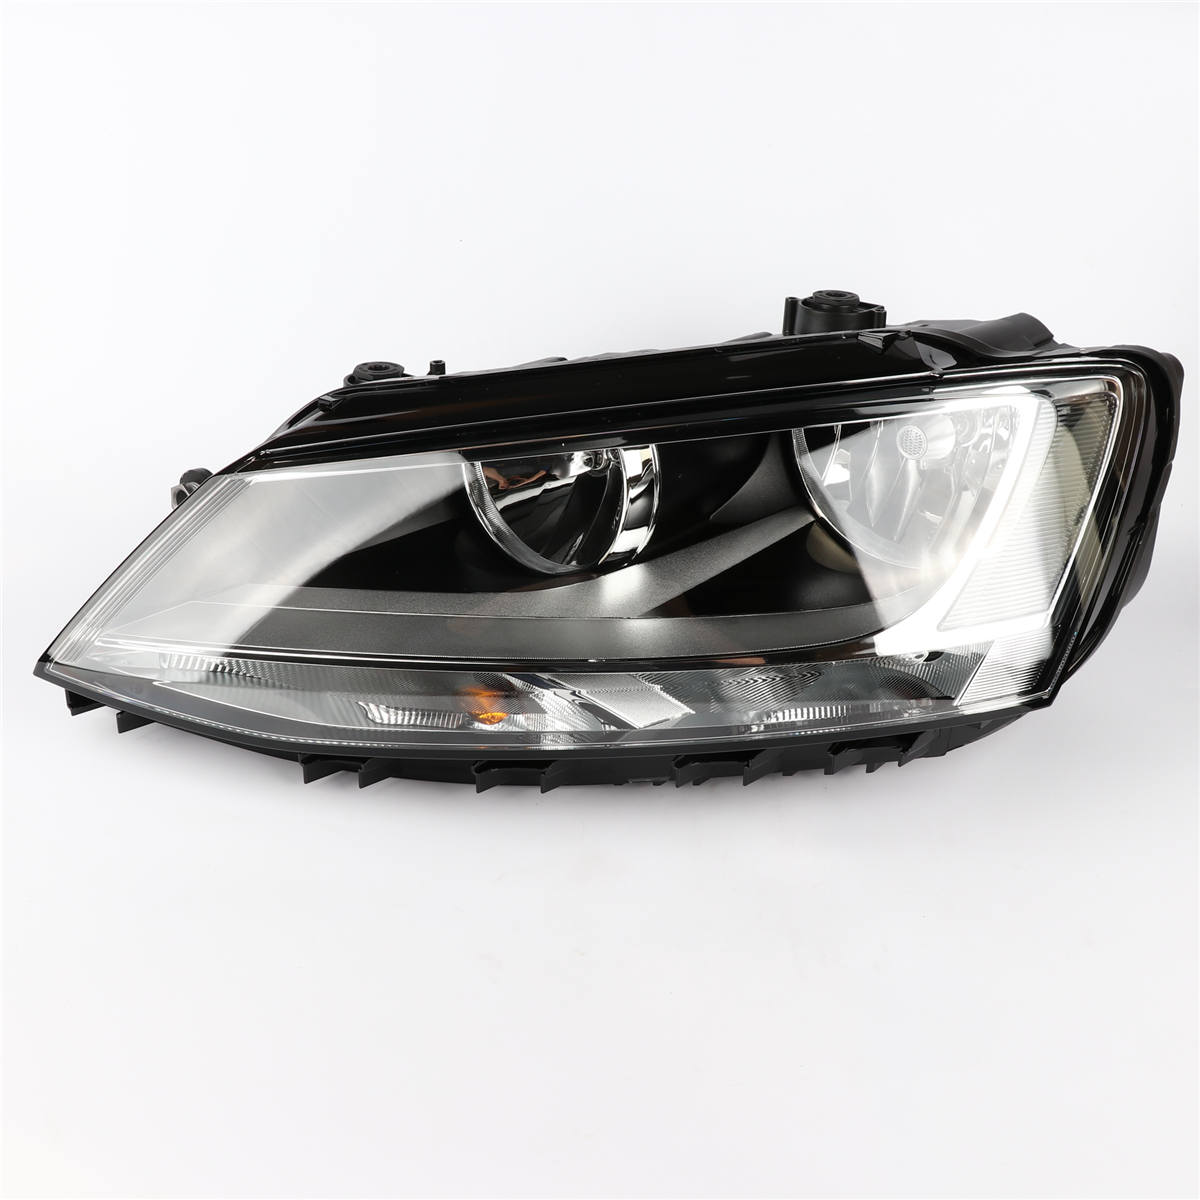 1Pcs Genuine Top Quality Front Head Light Lamp Assembly Right Side Headlight For VW Jetta MK6 L16D 941 006 top quality 0258007057 17014 lsu4 2 wide band o2 sensor for 99 05 vw jetta 1 8l l4 021906262b 06b906265d 06b906265m